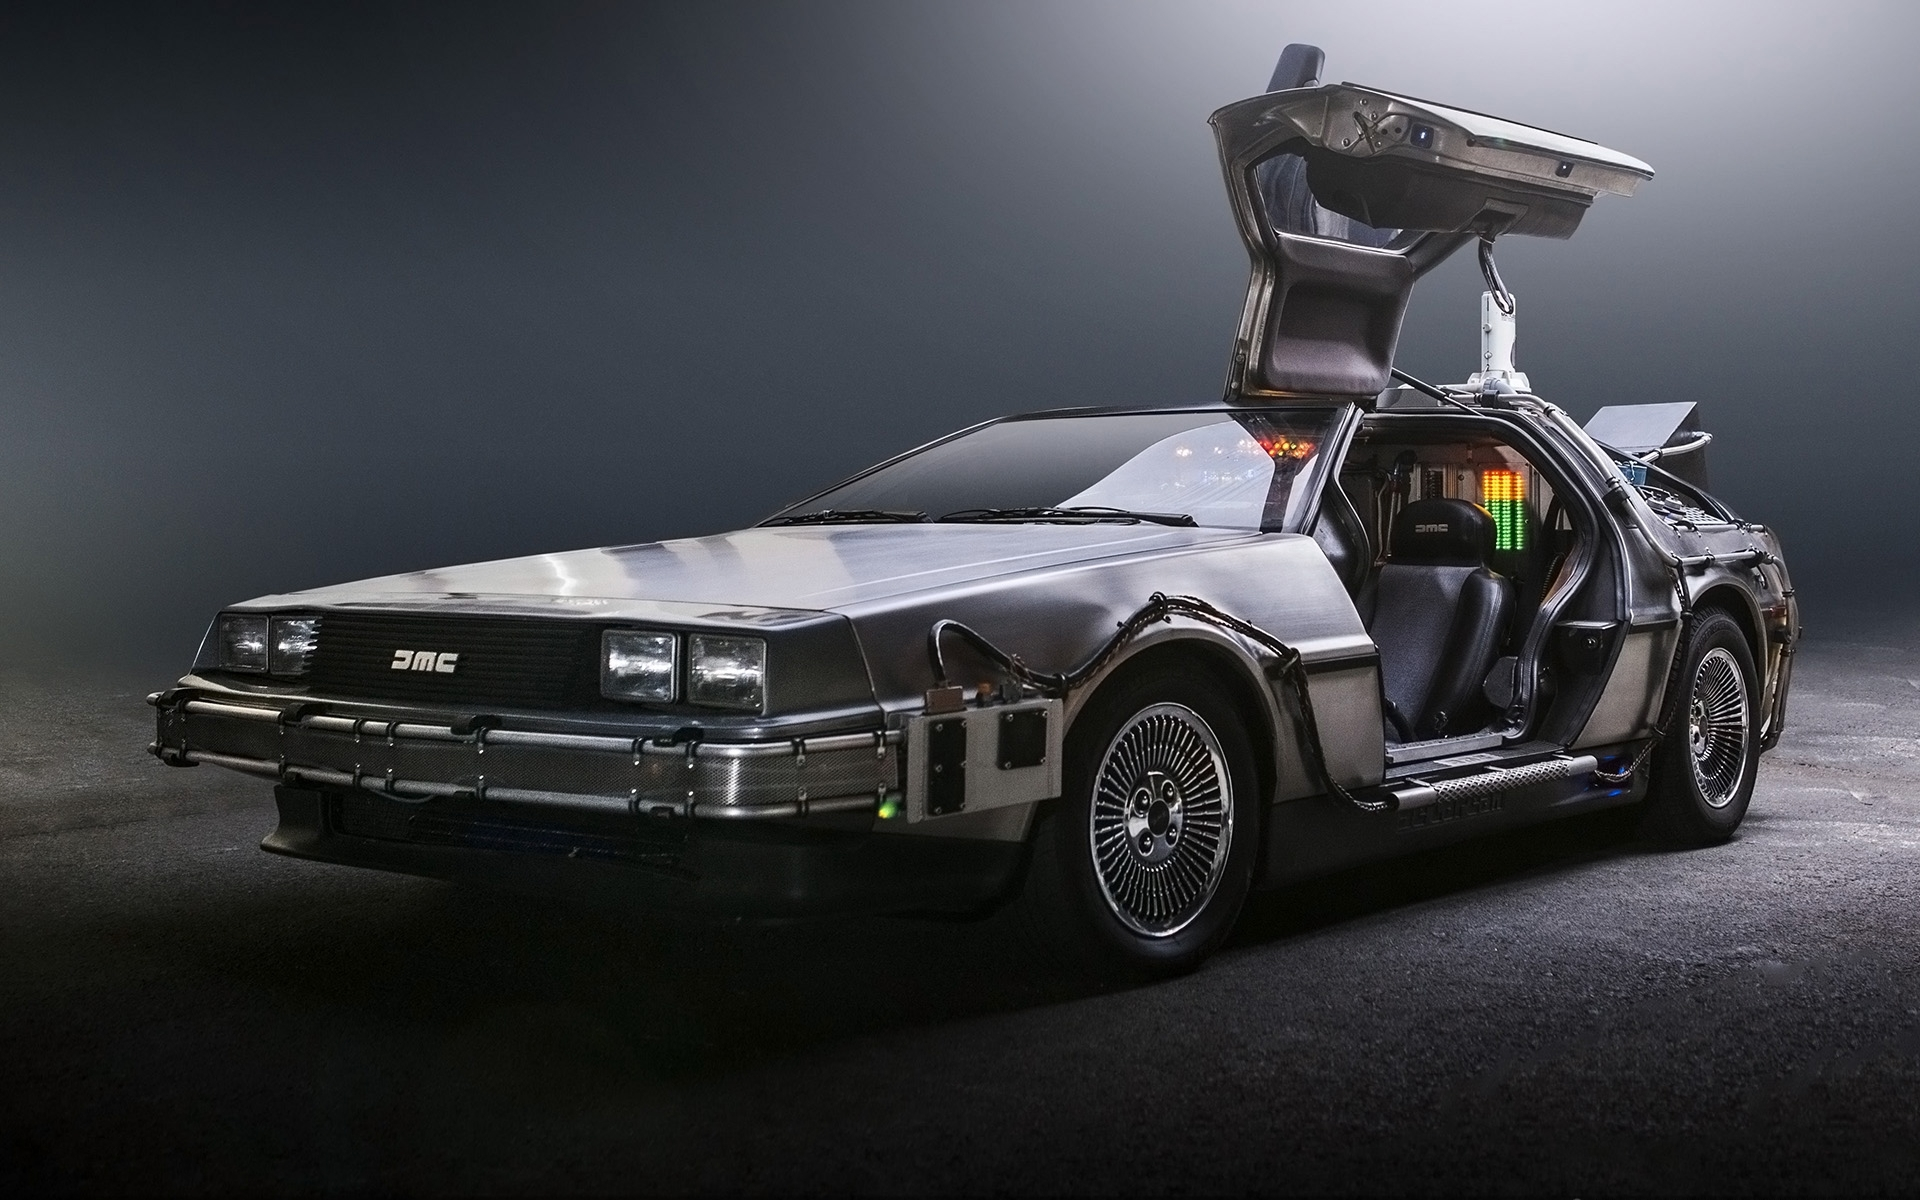 delorean-dmc-12-back-to-the-5141.jpg